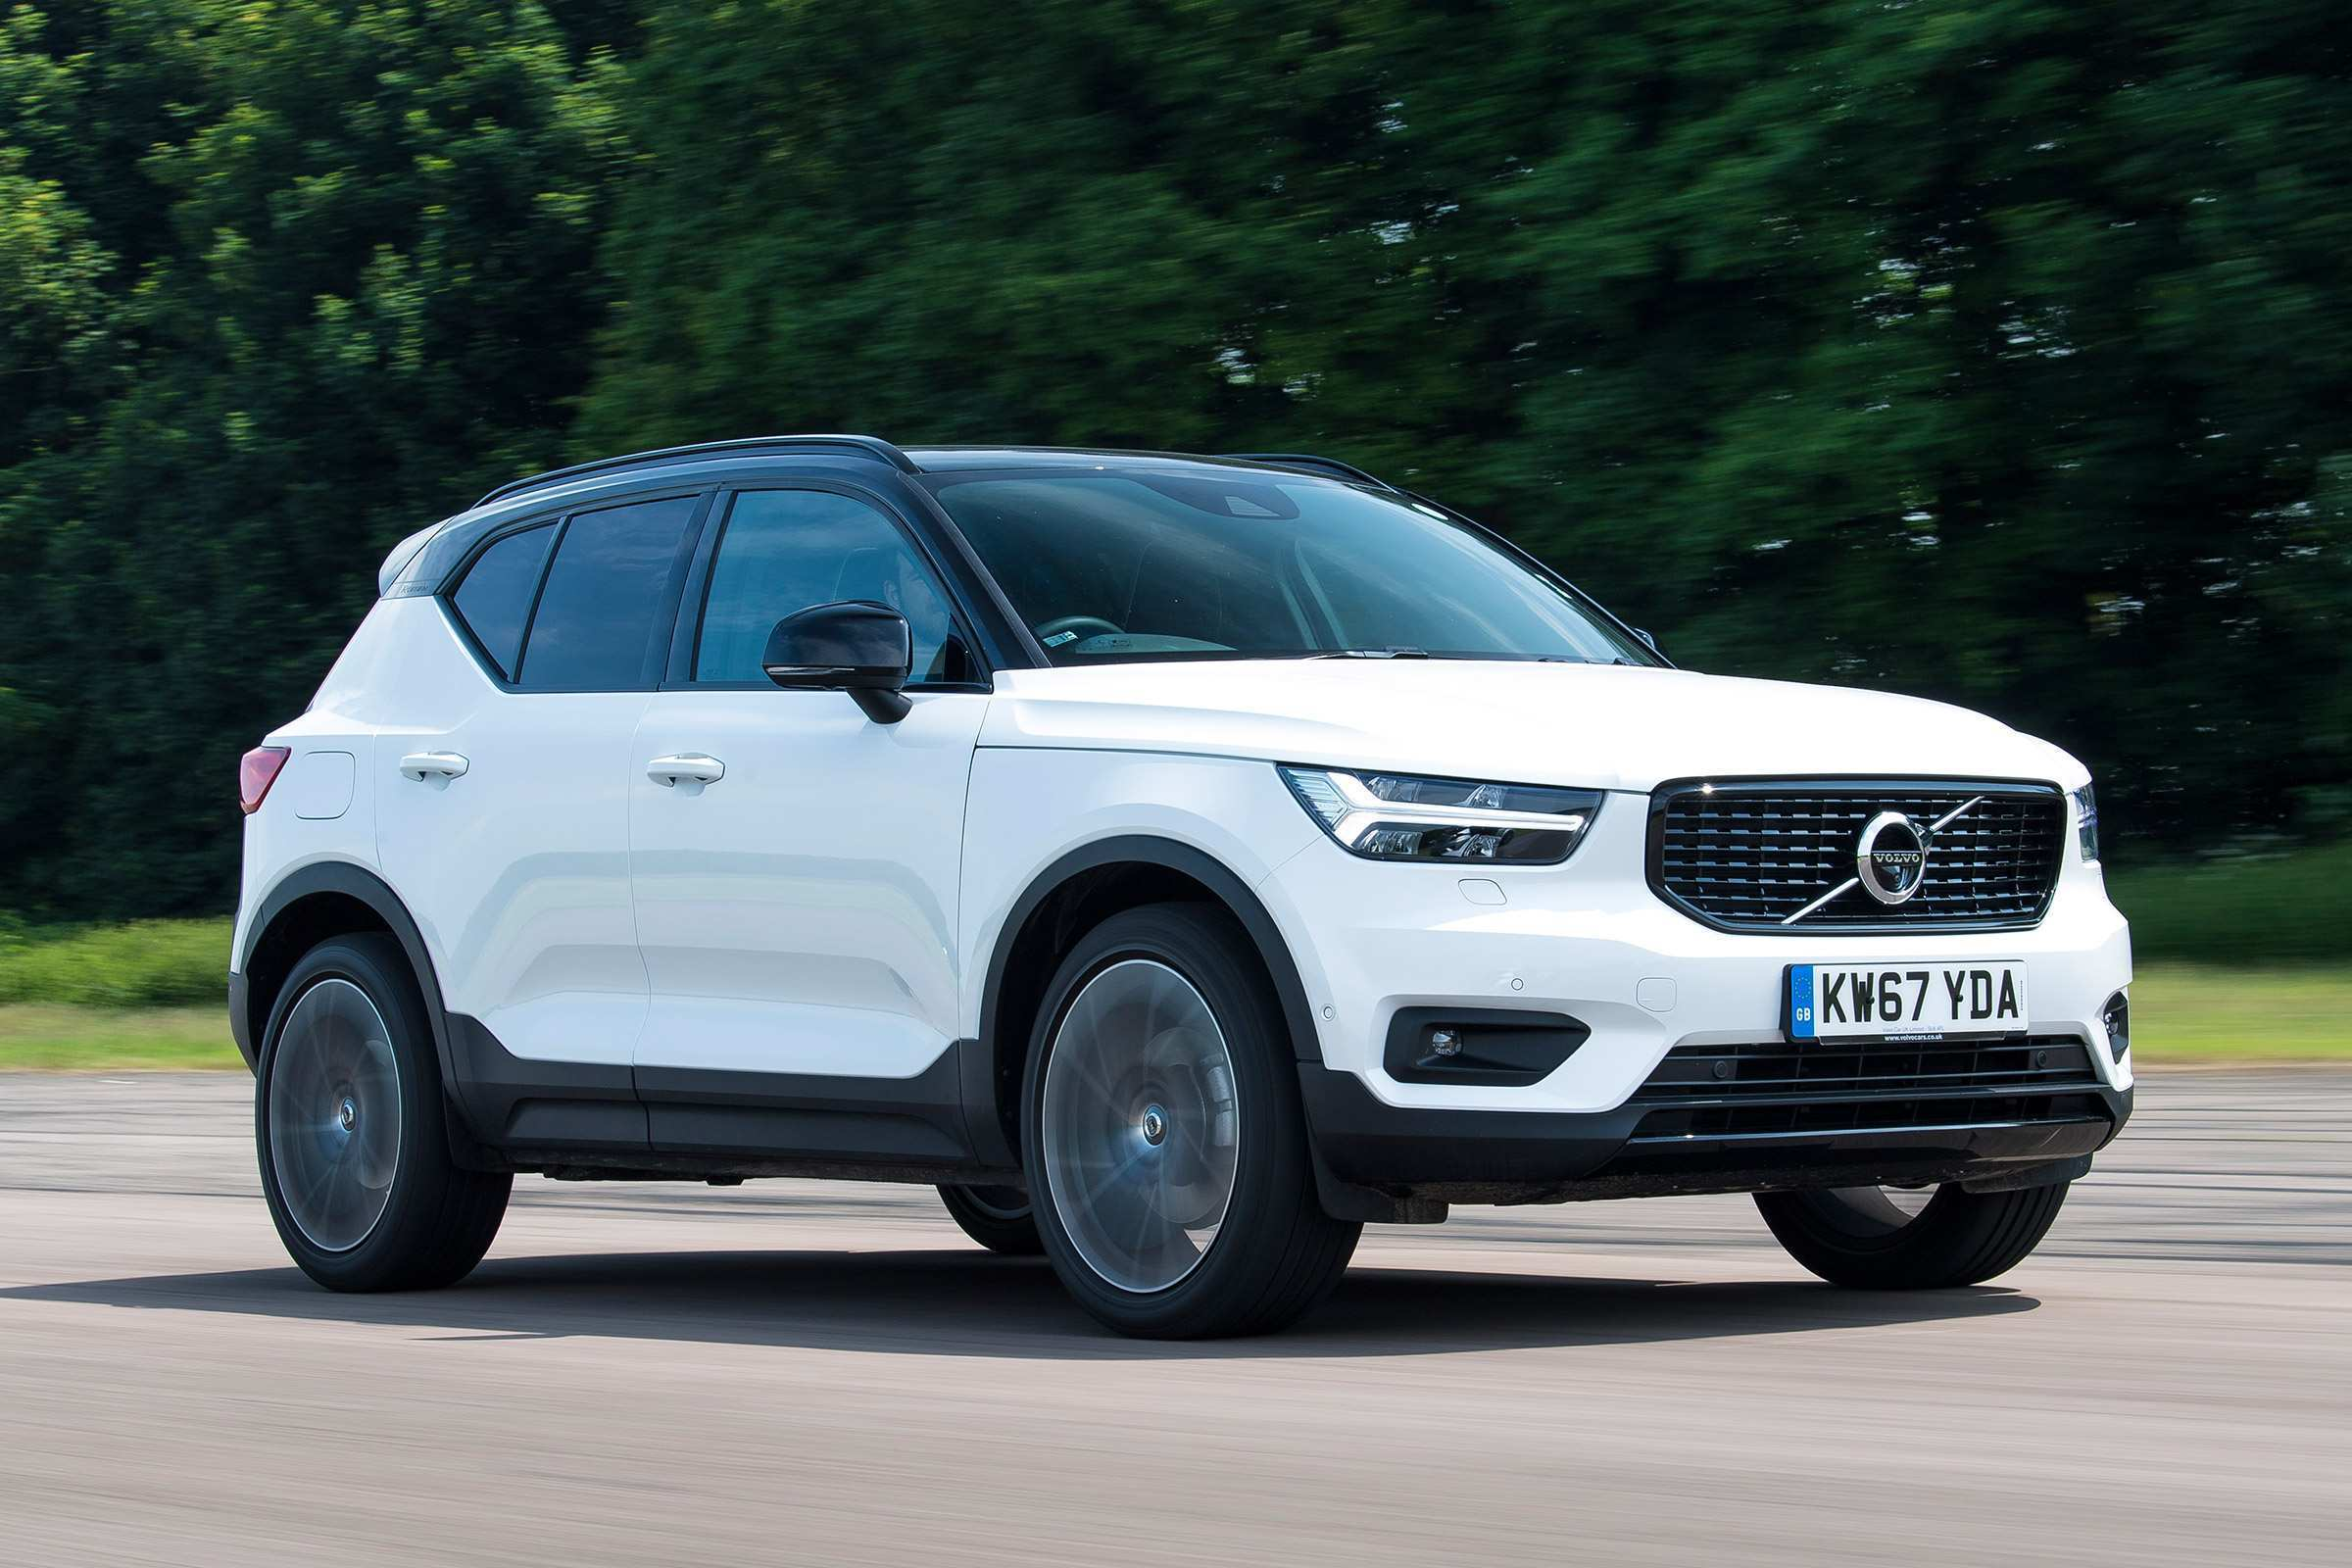 96 All New Volvo Xc40 Dimensions 2020 New Review for Volvo Xc40 Dimensions 2020